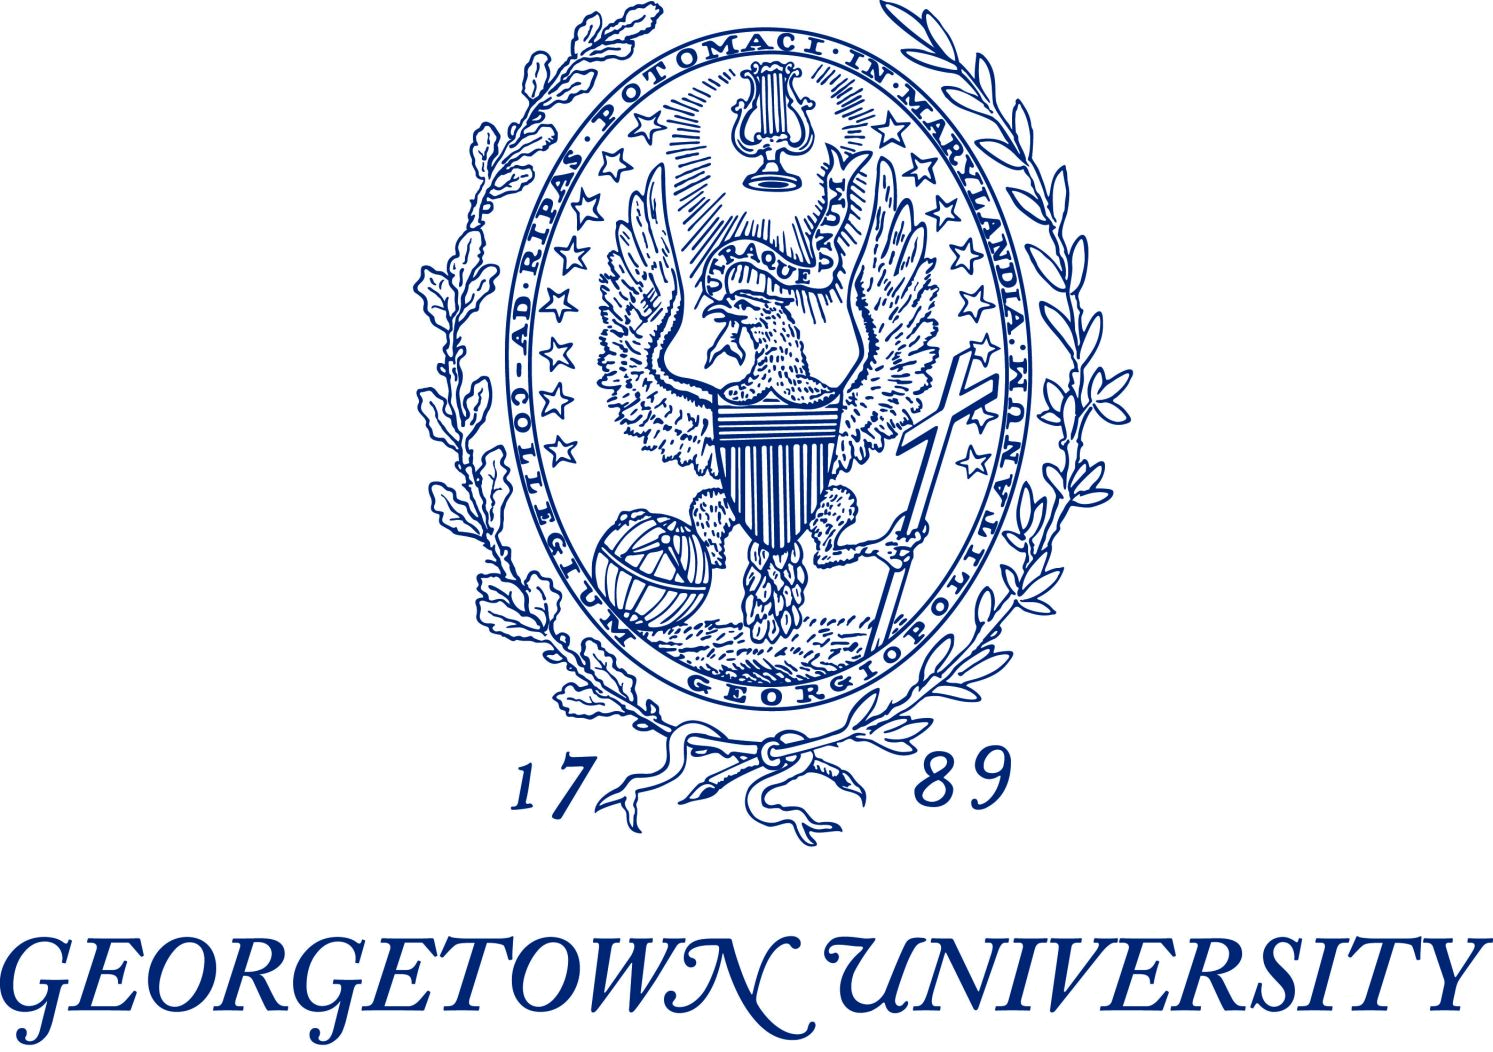 Georgetown University Photographer / Photography